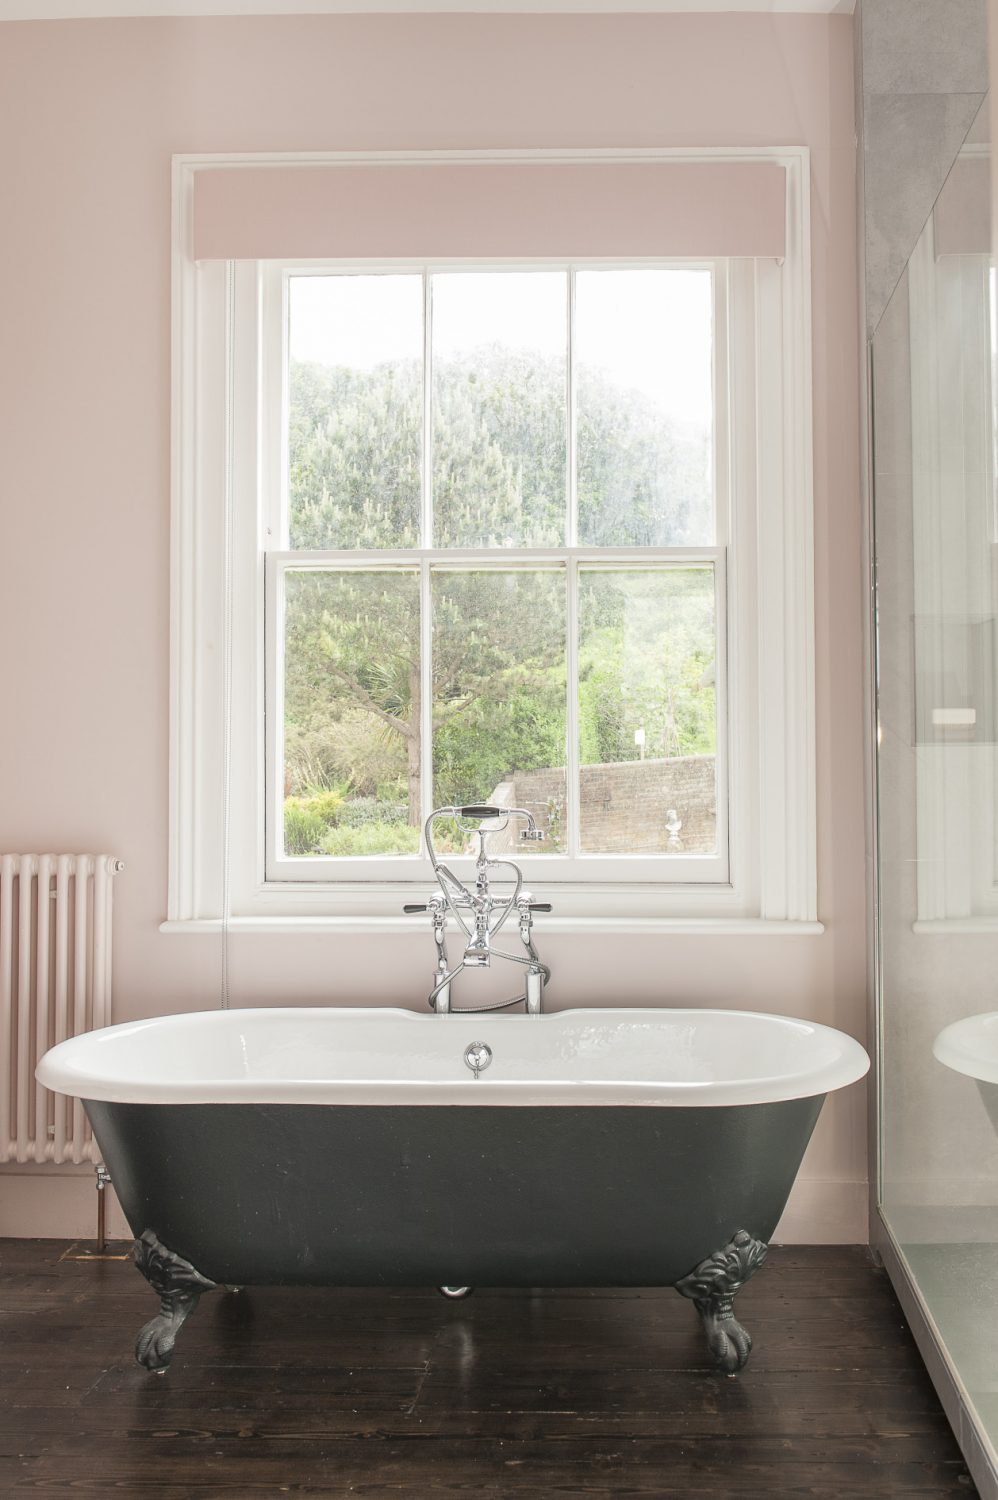 There is an equally lovely view from the bath - over a planted sedum flat roof and their neighbour's beautiful garden, up to Hastings Country Park. The bathroom fittings are from CP Hart